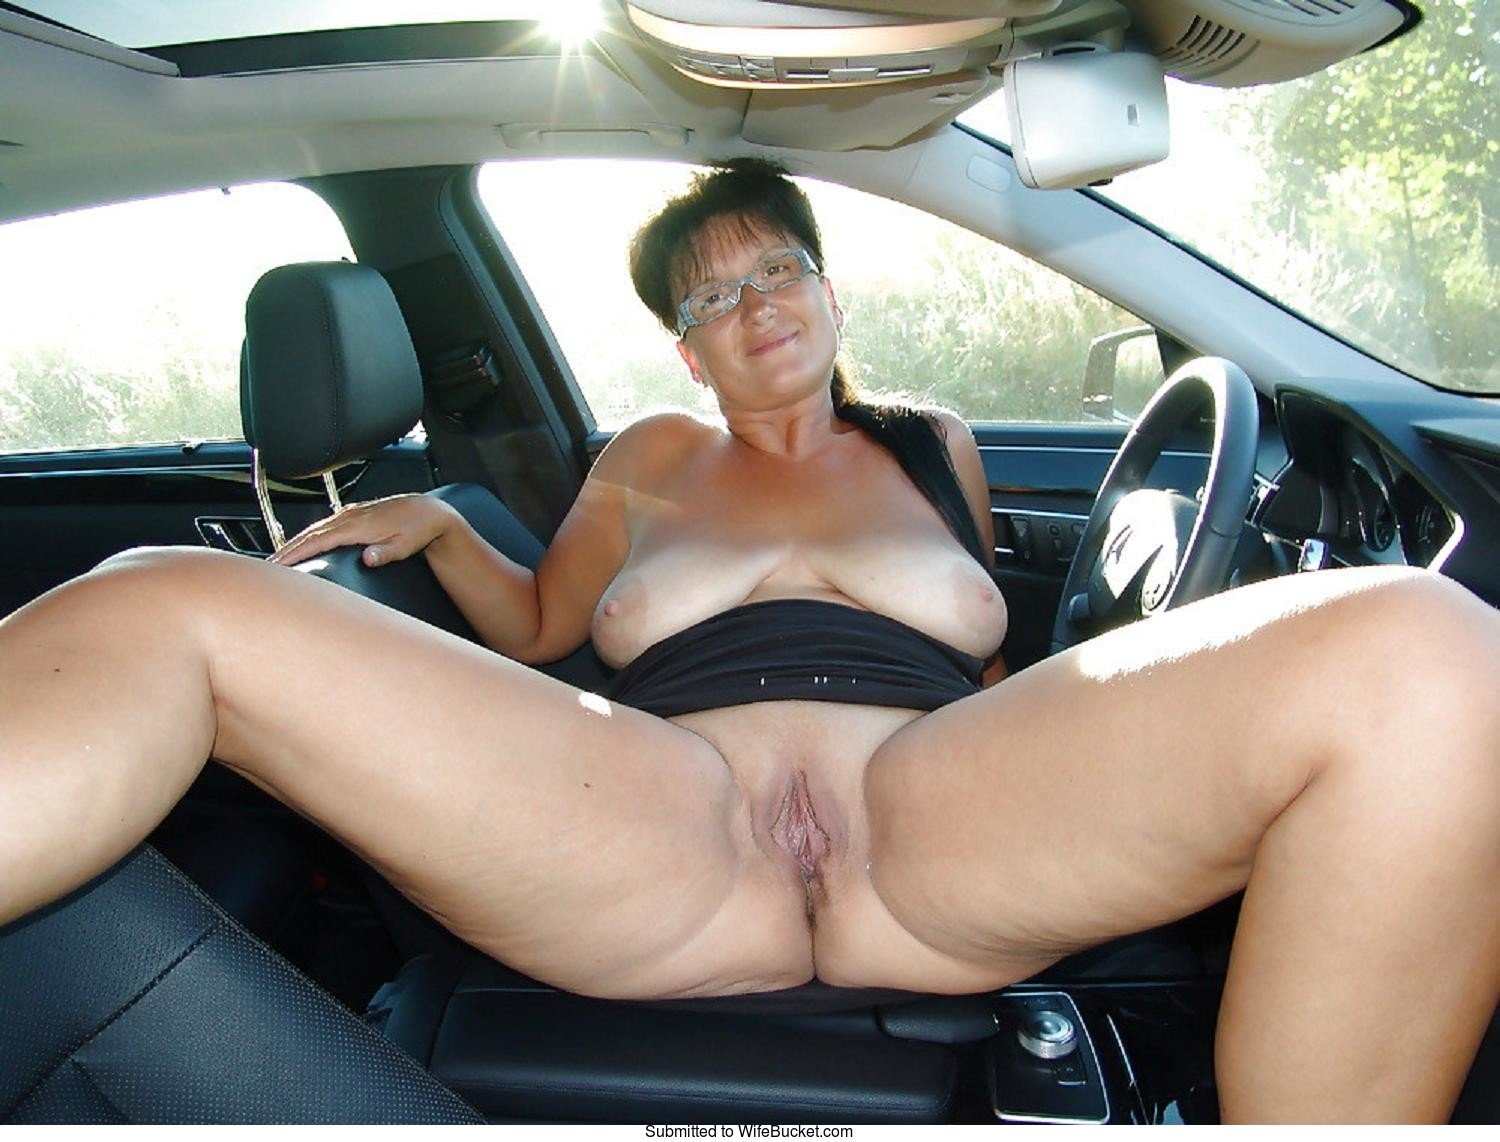 naked milf in the car